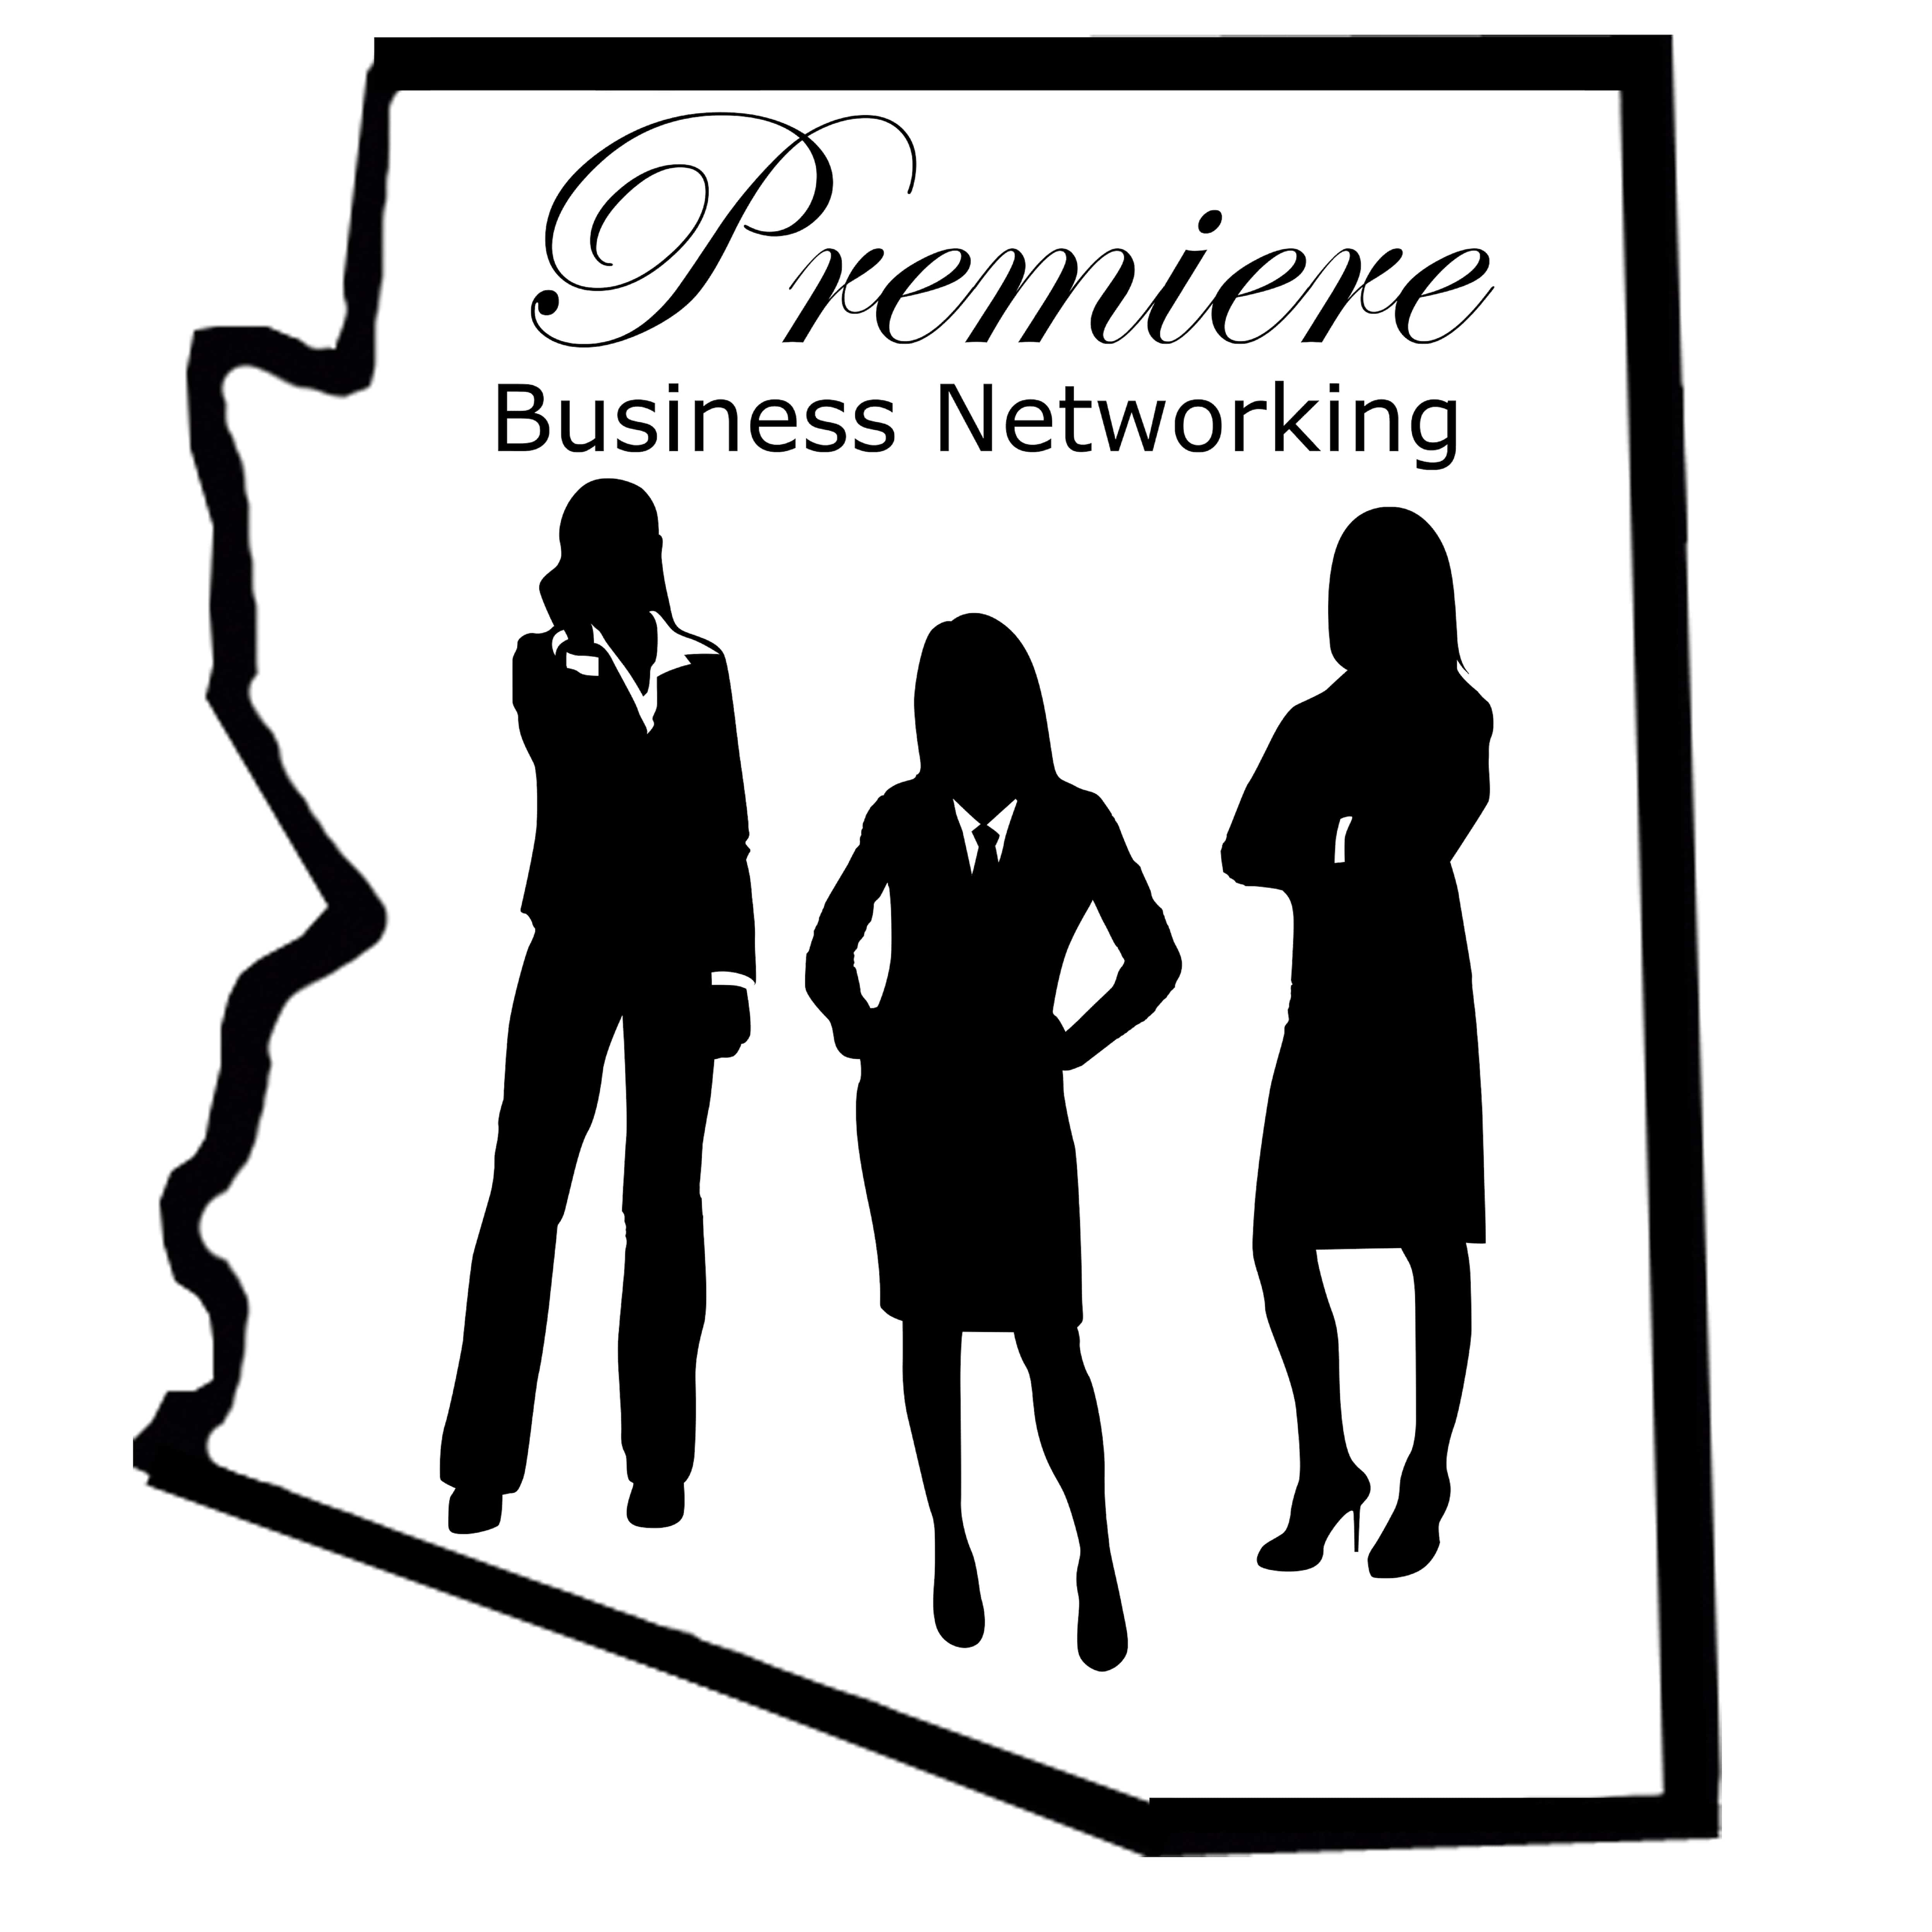 Premiere Business Networking